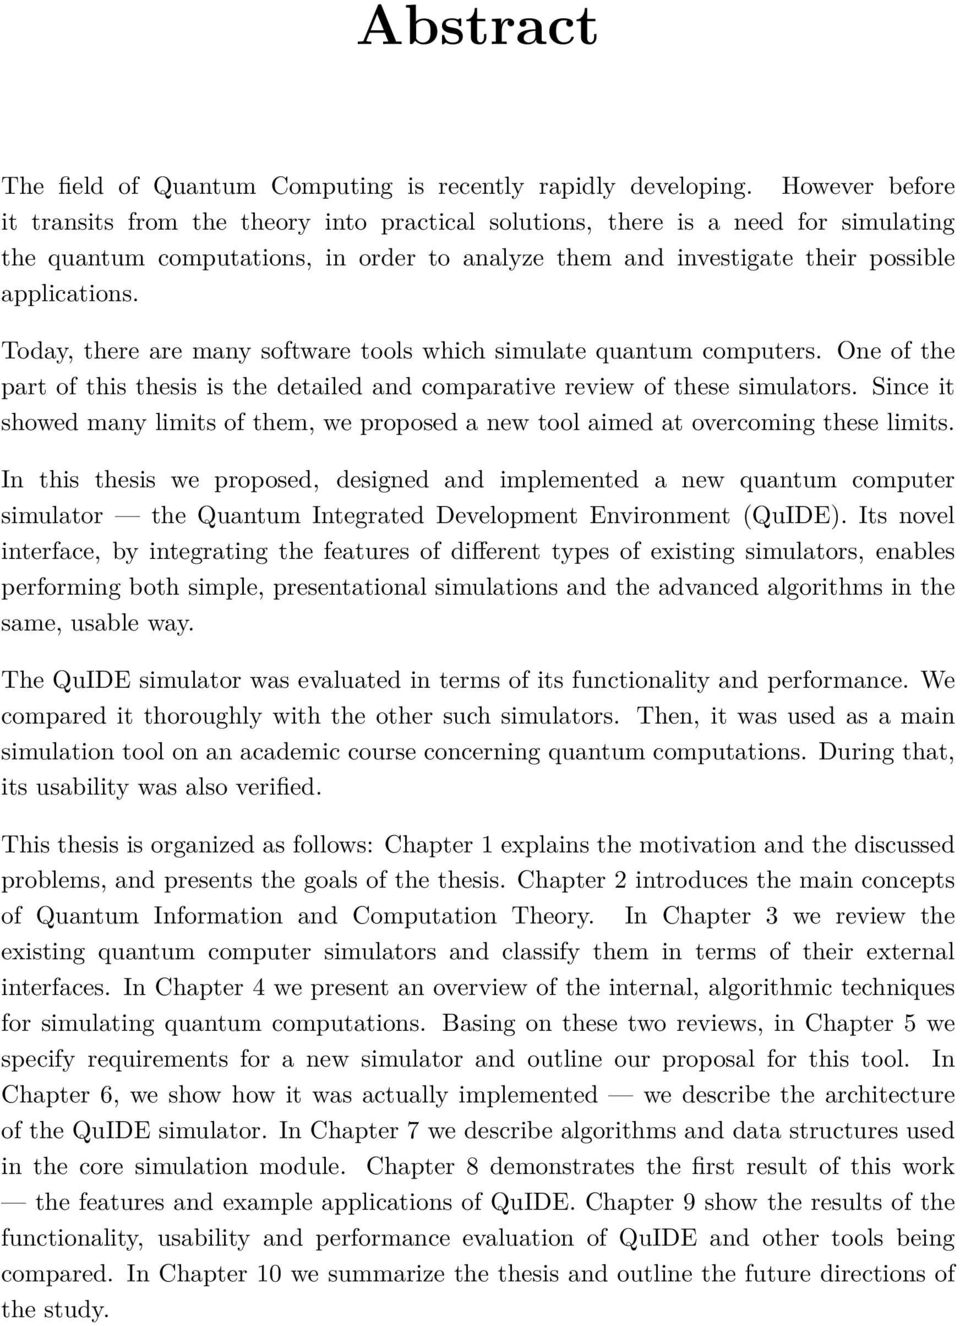 Today, there are many software tools which simulate quantum computers. One of the part of this thesis is the detailed and comparative review of these simulators.